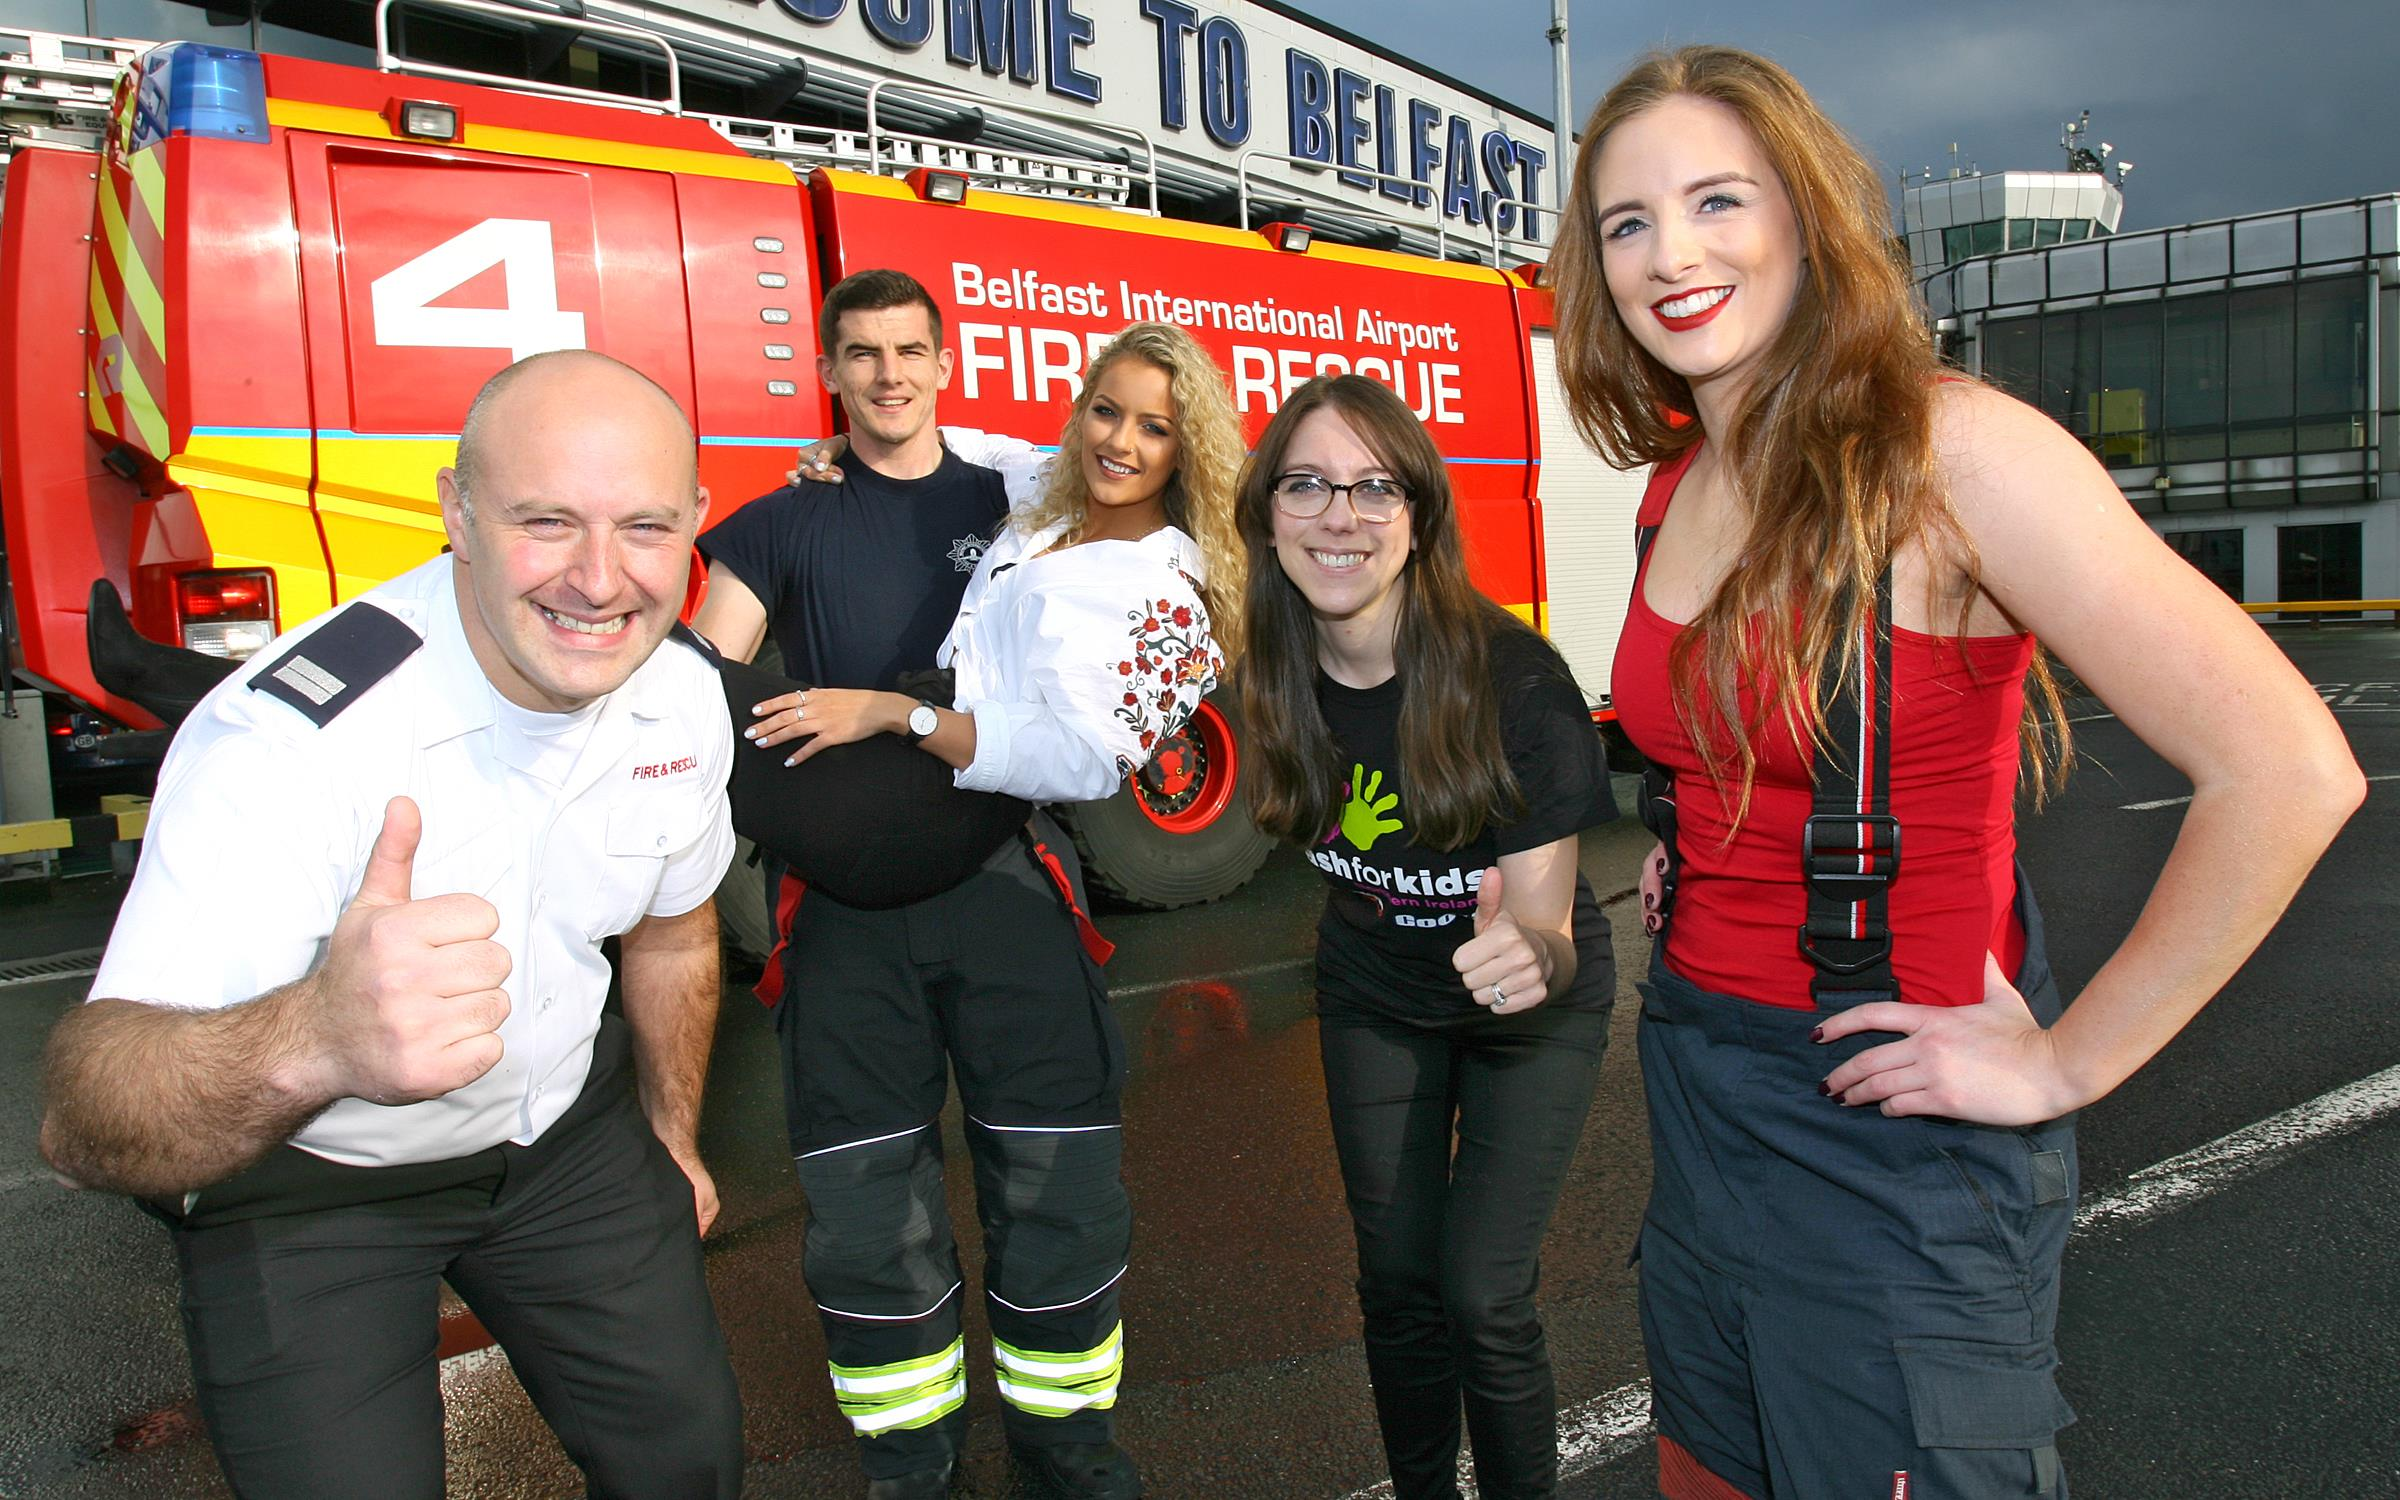 Airport firefighters get down to bare minimum for good cause